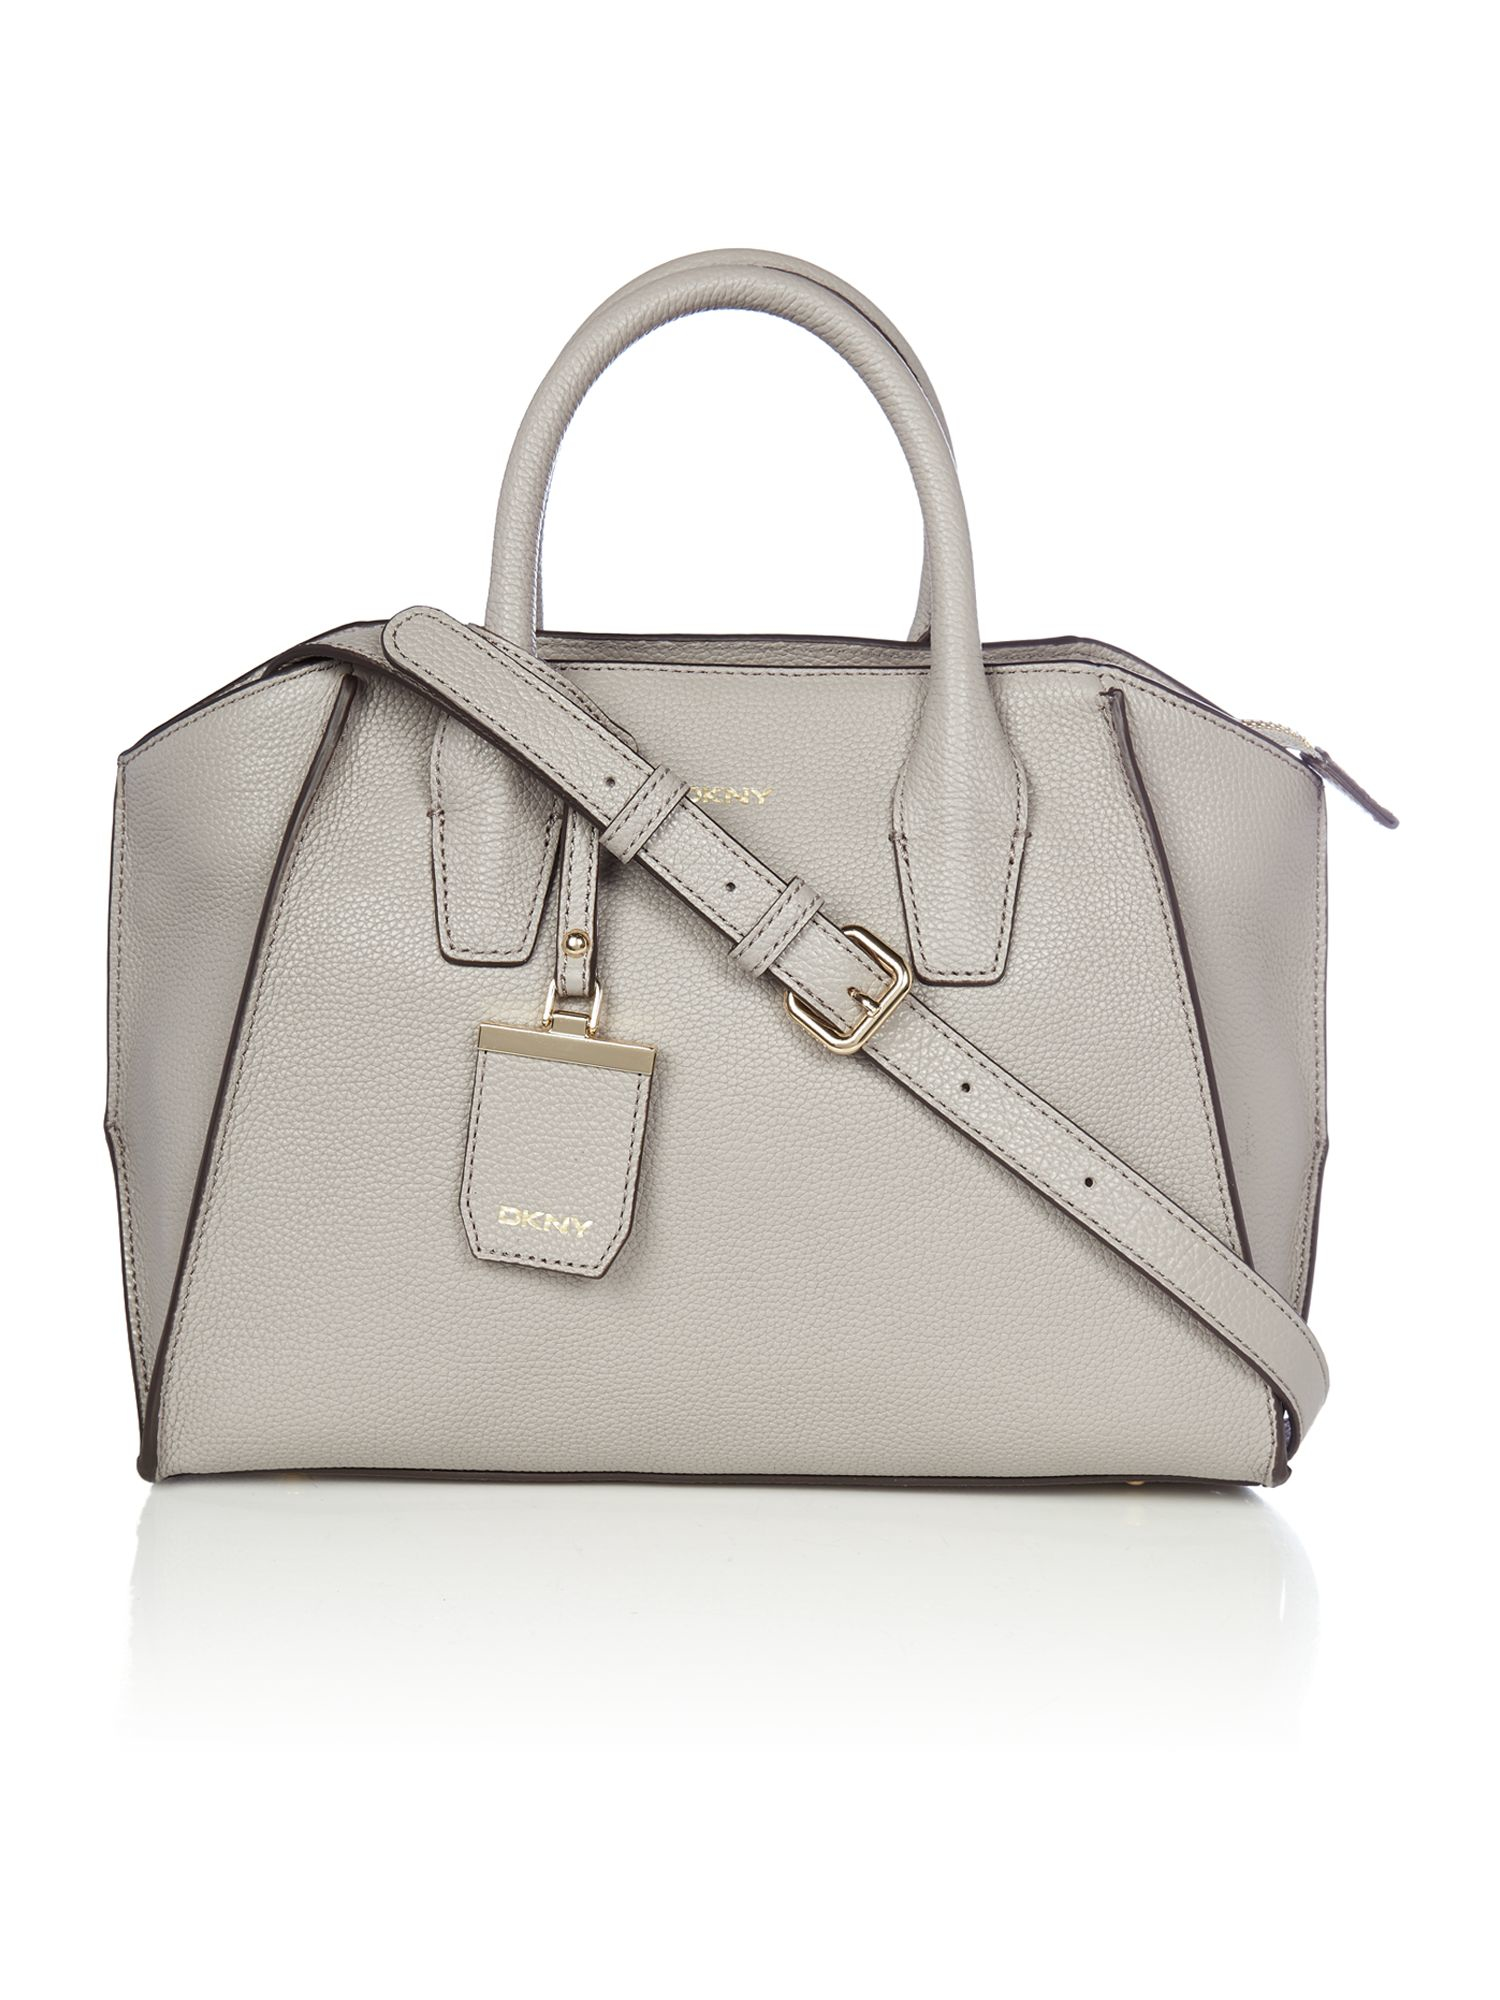 Dkny Chelsea Grey Medium Satchel Bag in Gray | Lyst